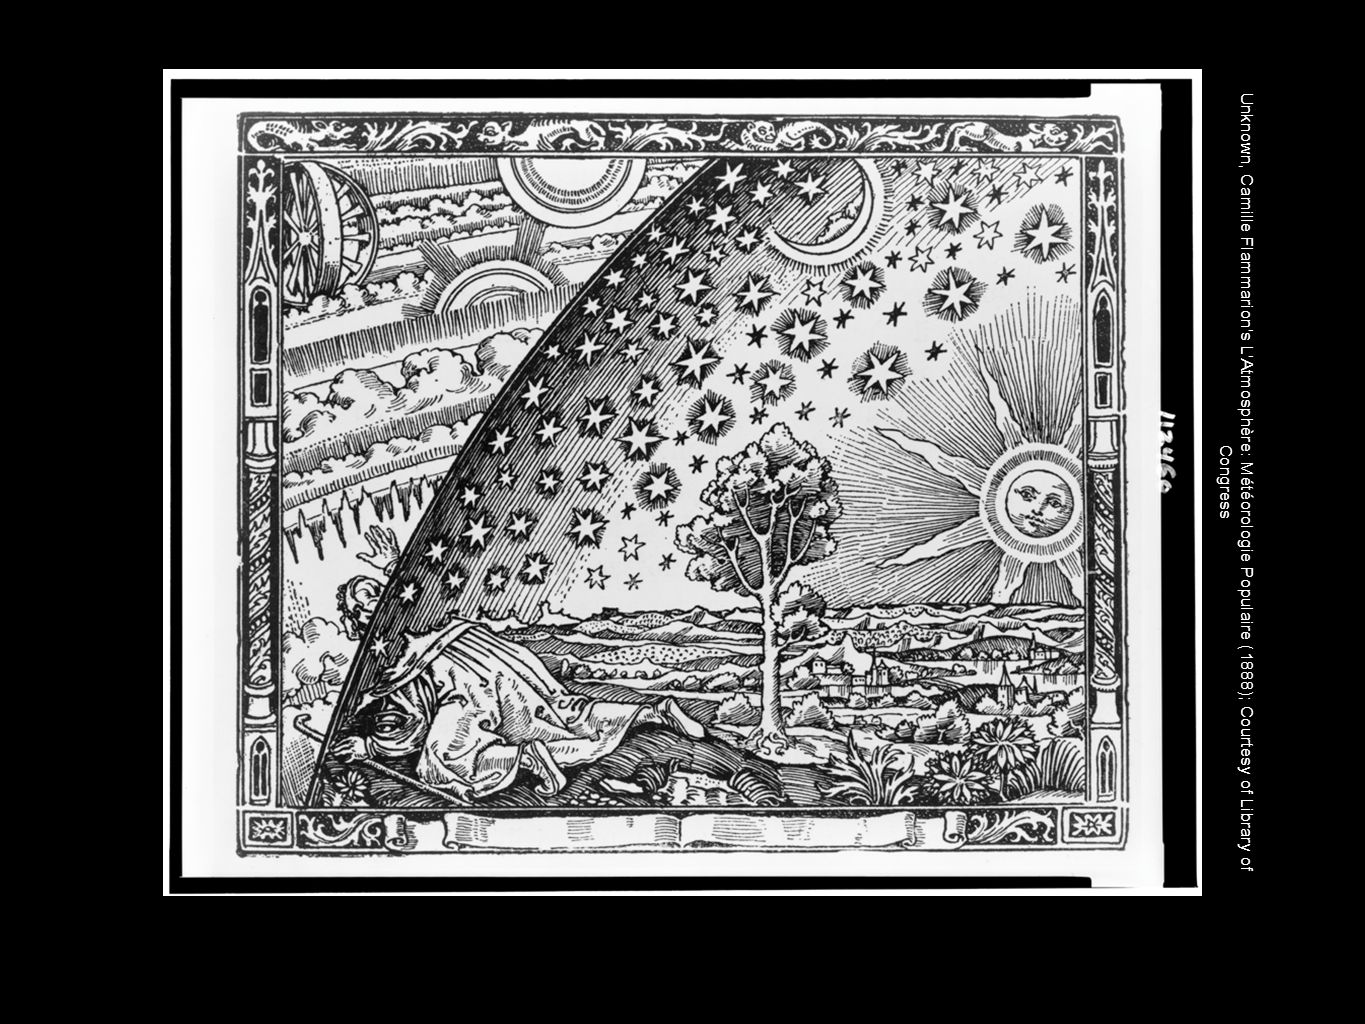 Unknown, Camille Flammarion s L Atmosphère: Météorologie Populaire (1888); Courtesy of Library of Congress